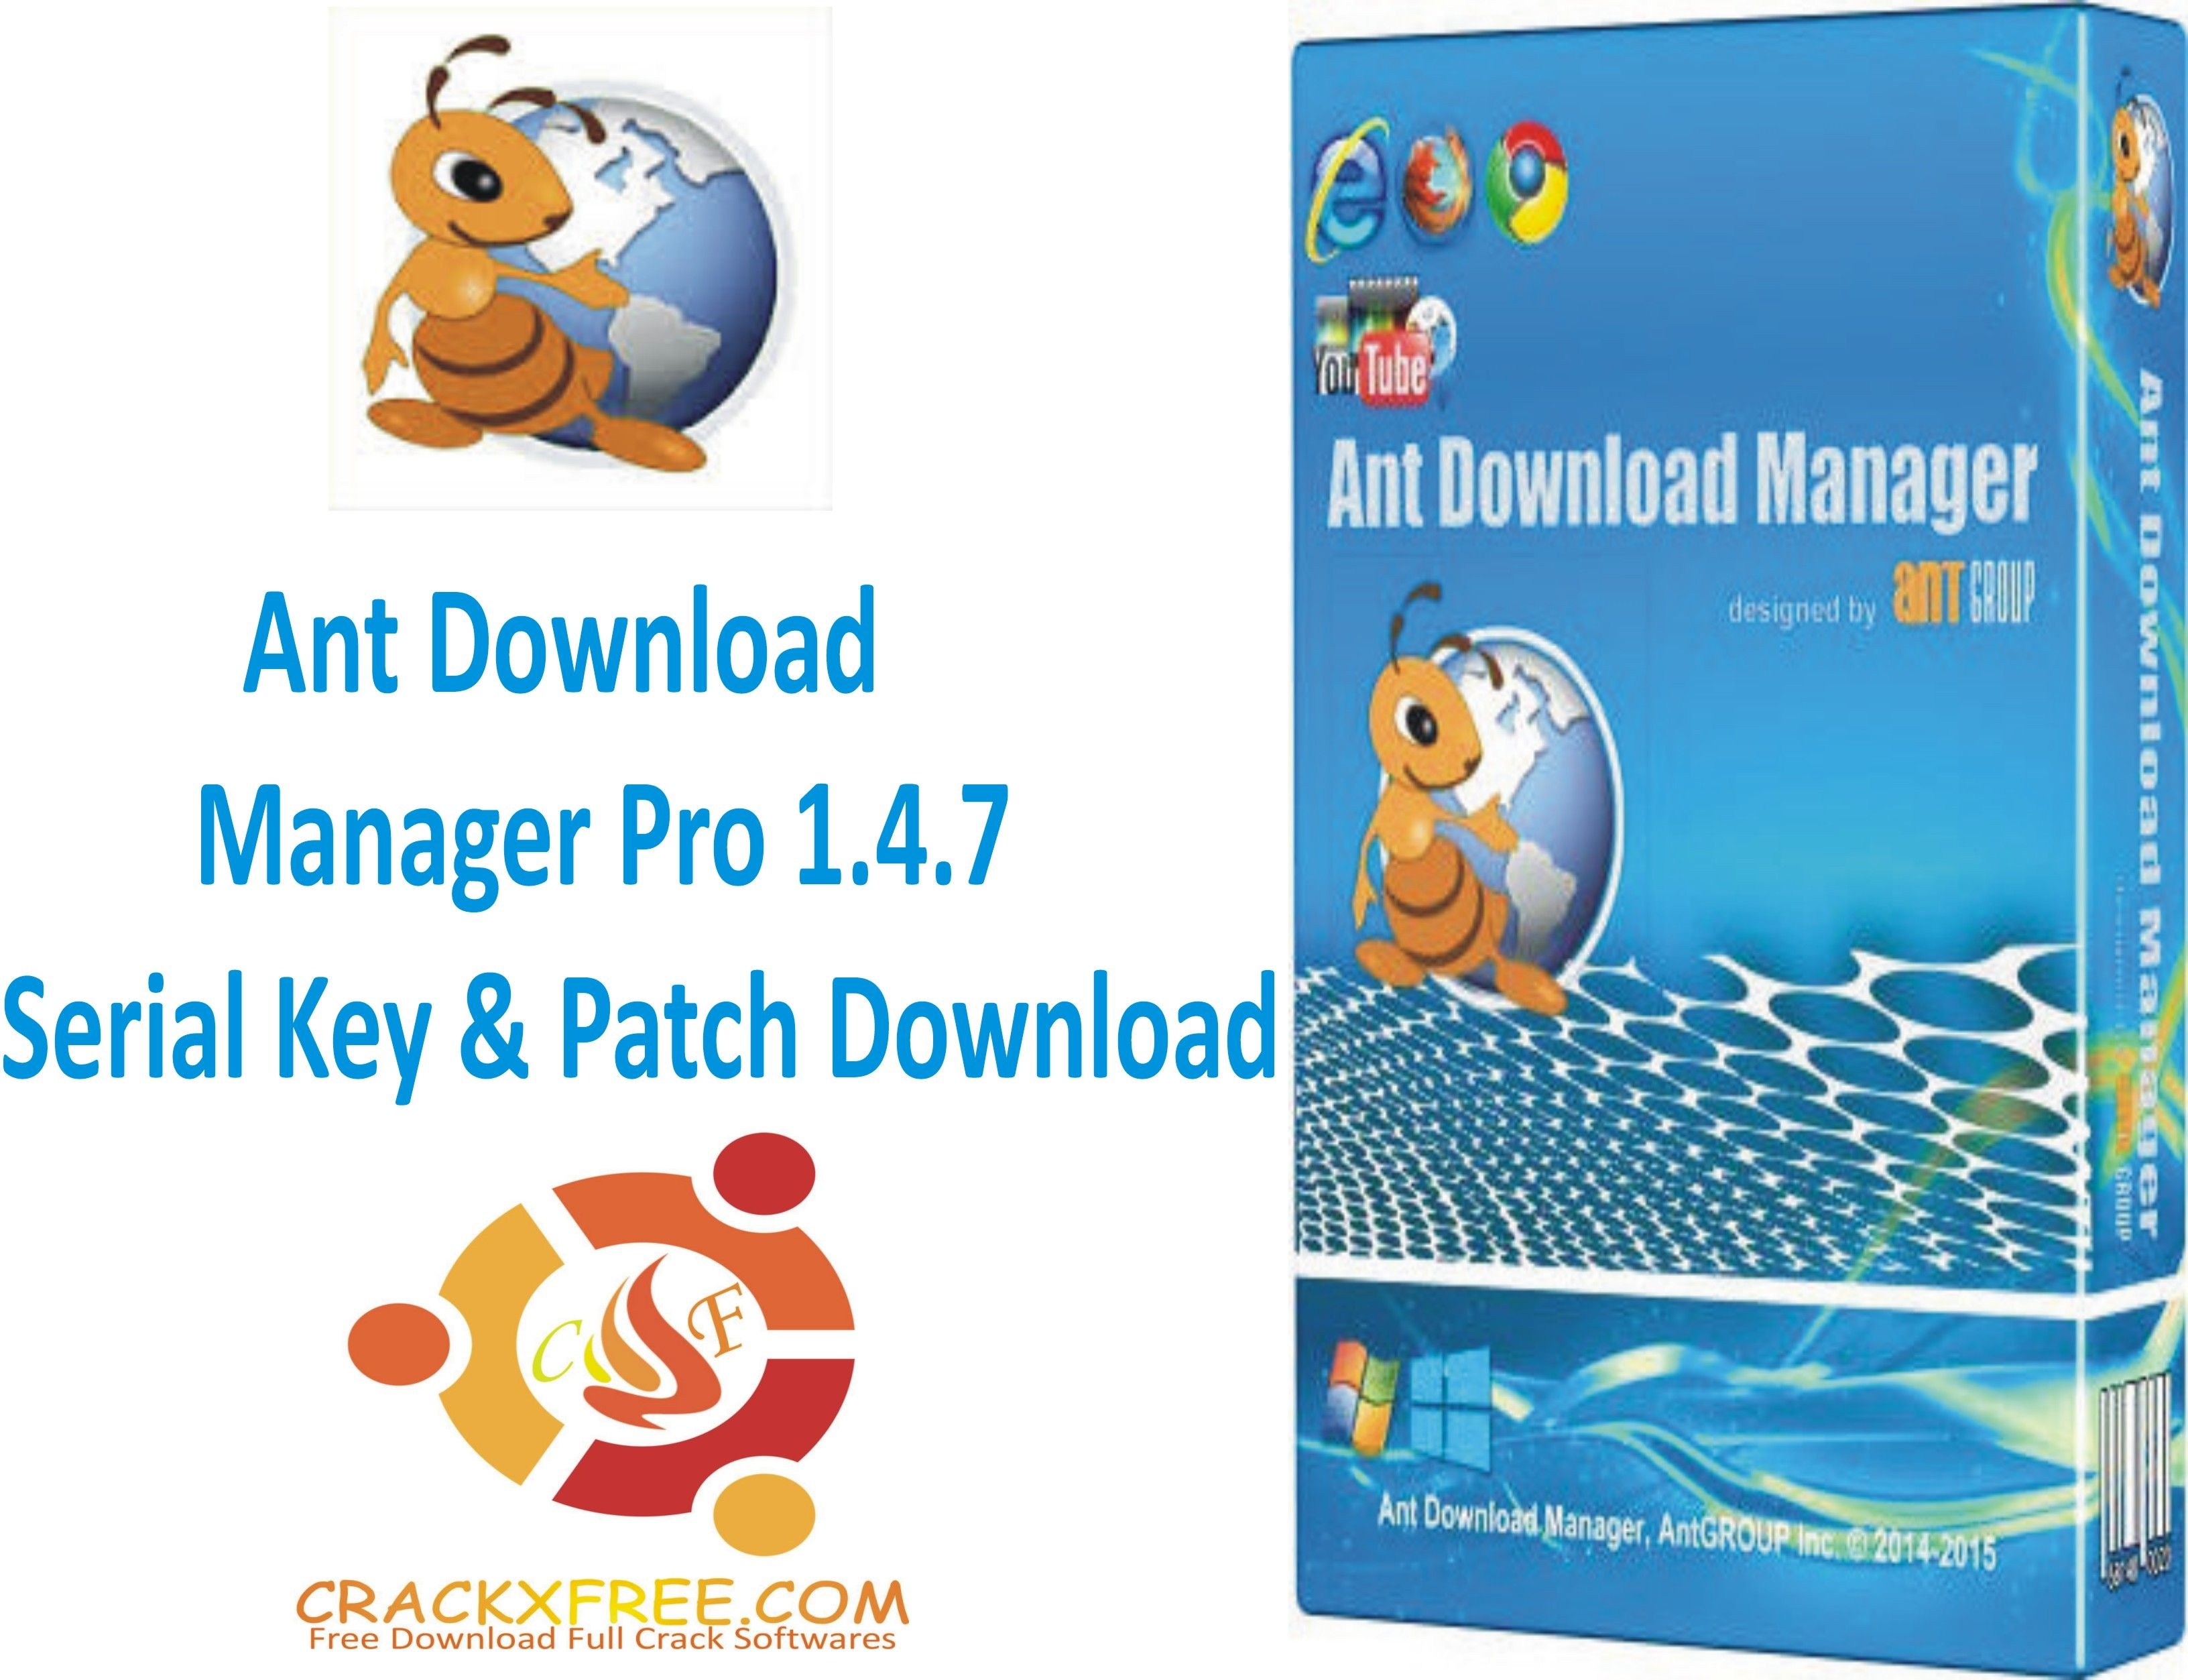 Ant Download Manager Pro 1.4.7 Serial Key & Patch Download #Ants ...